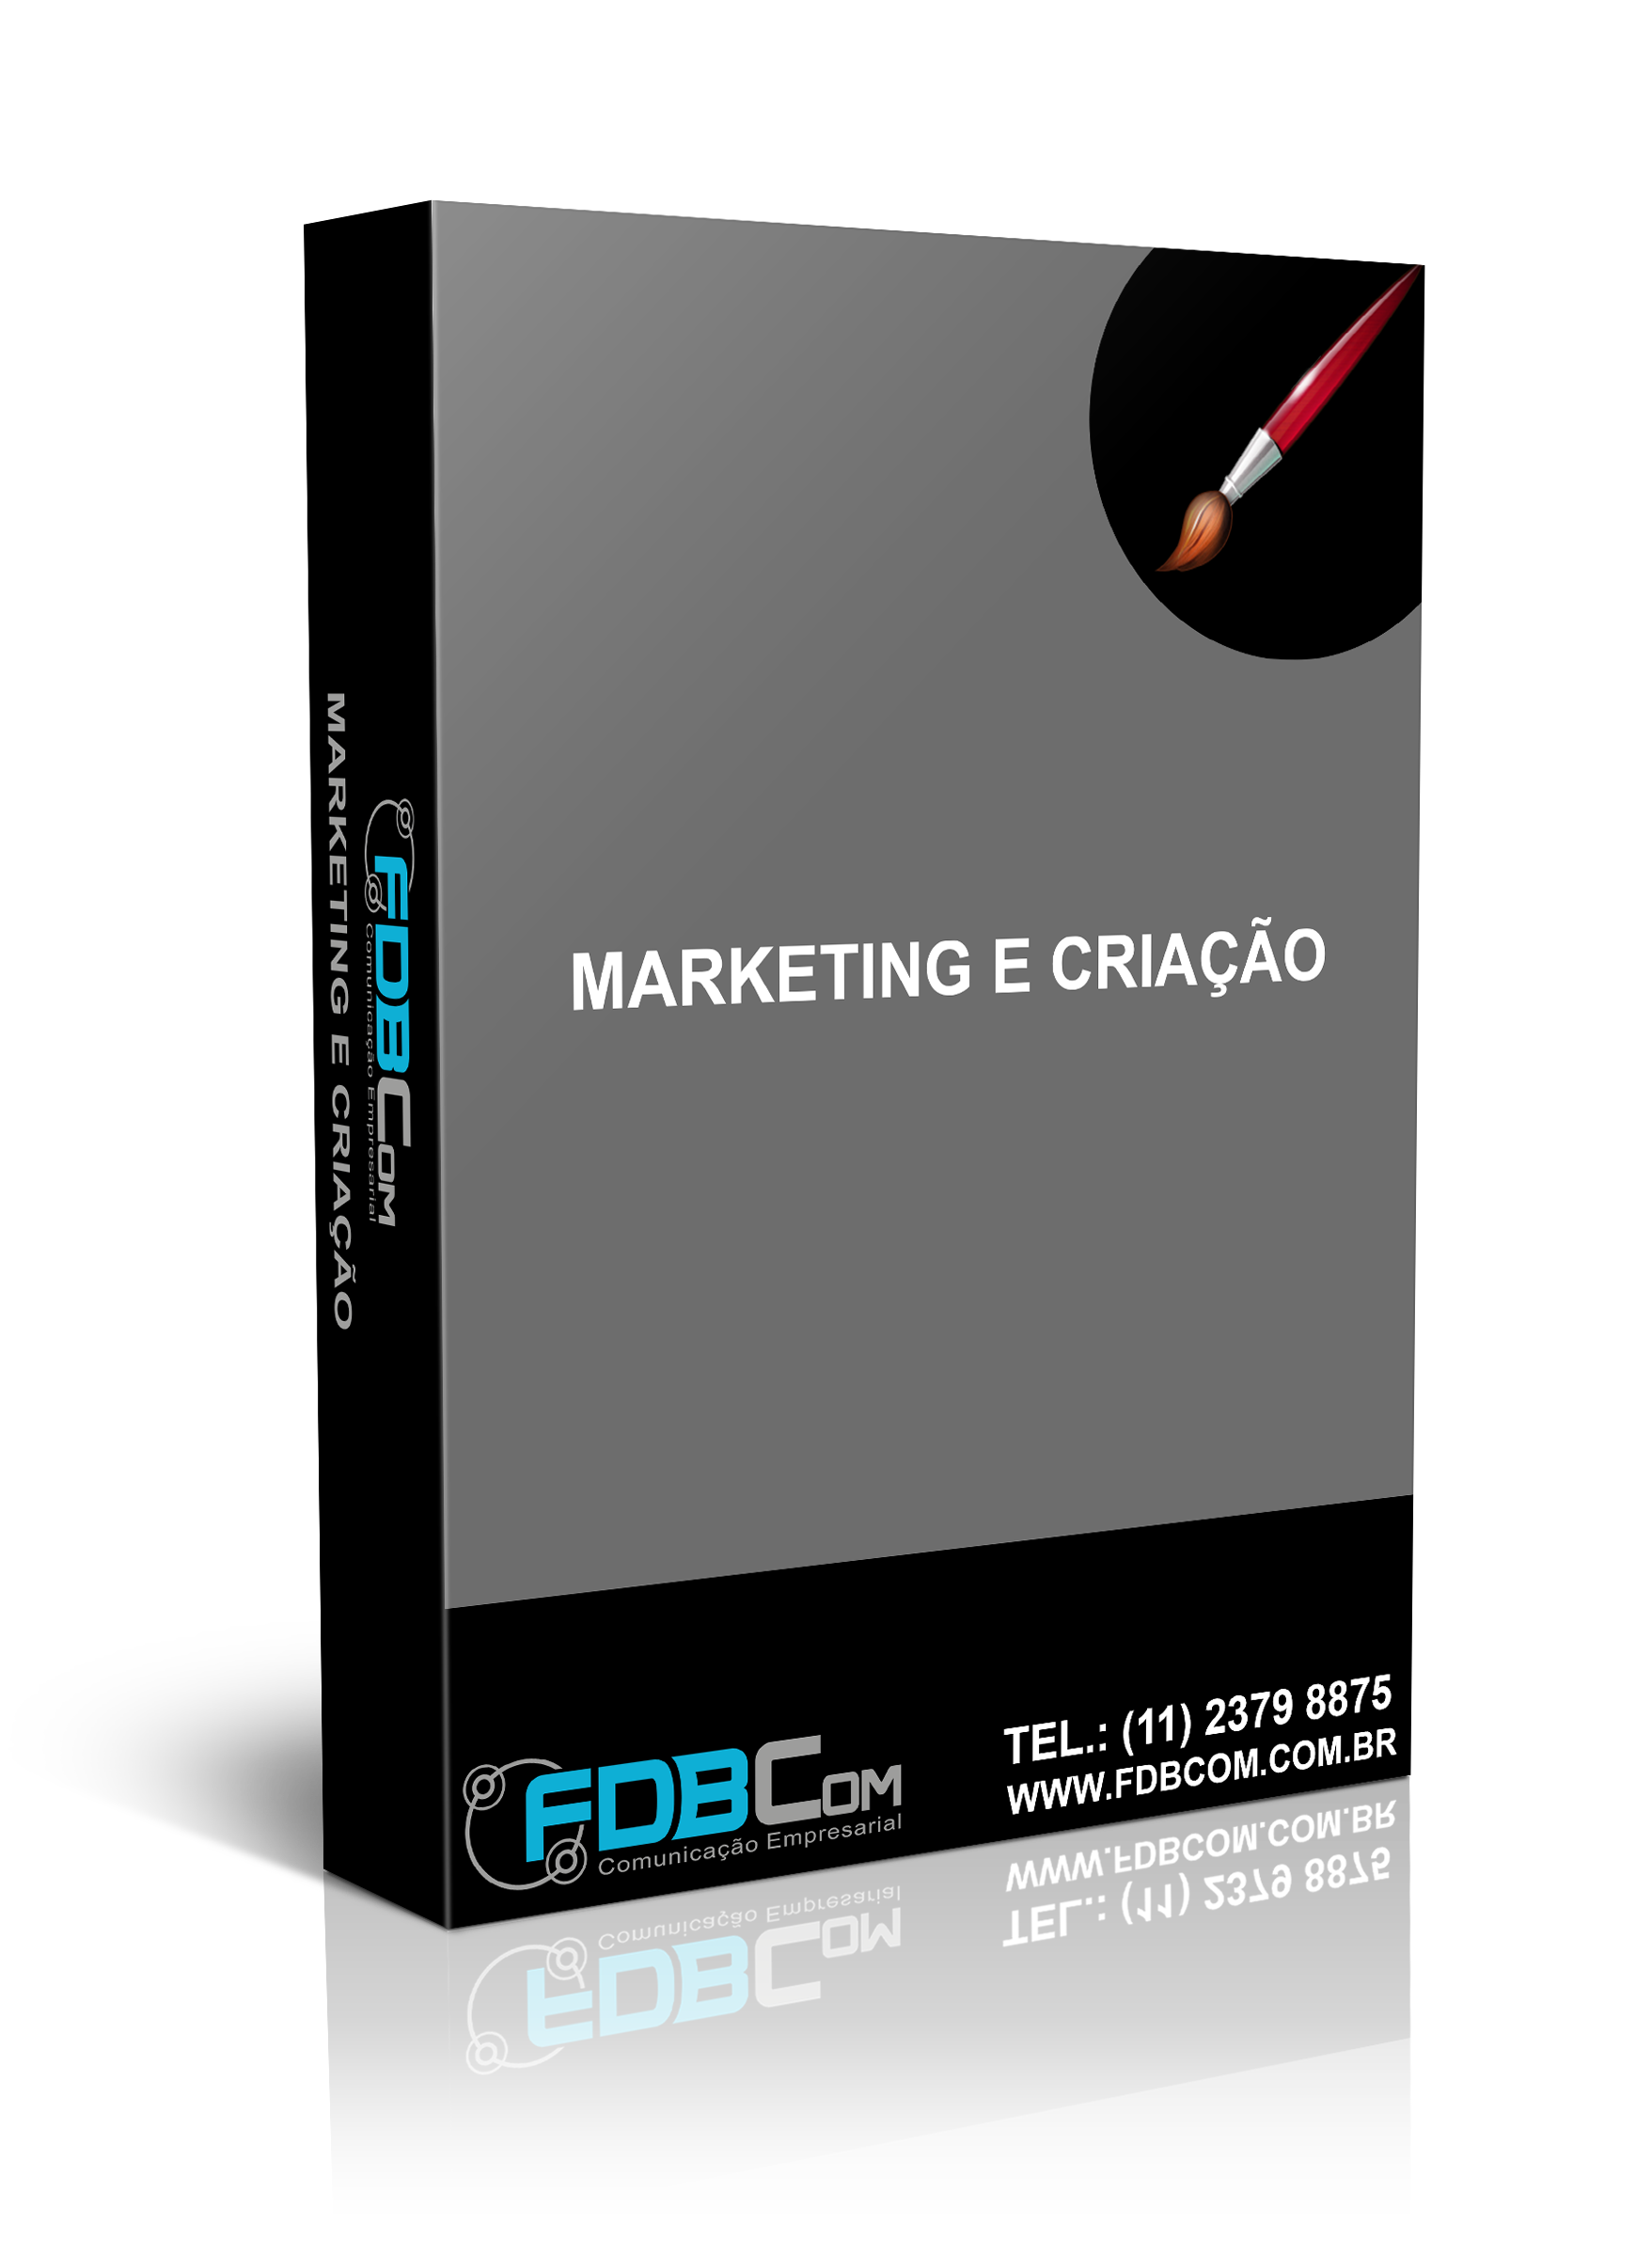 marketing e criacao